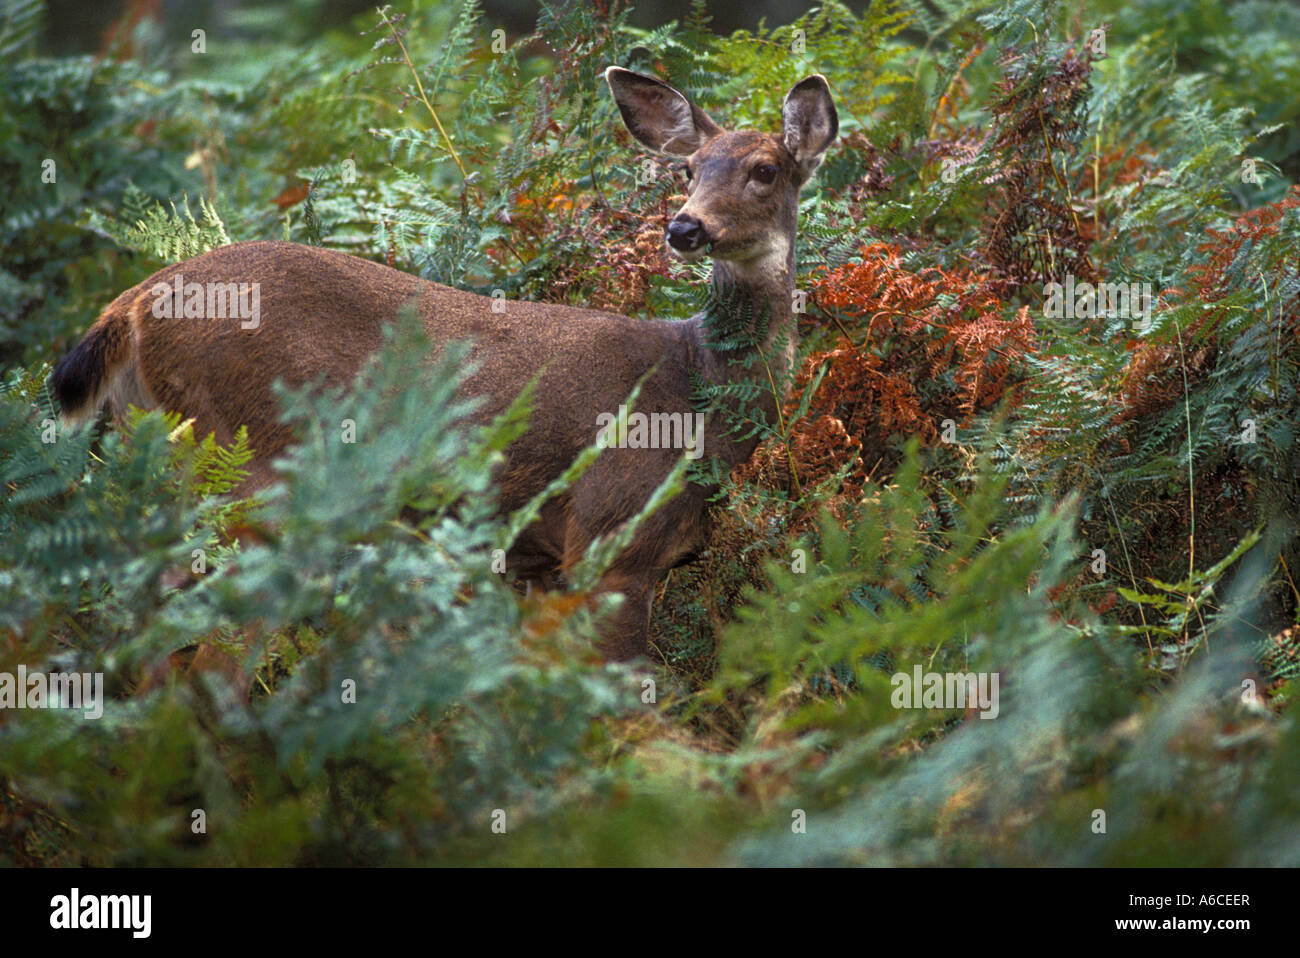 Blacktail Deer in thicket of ferns Quinault area Olympic National Park Washington - Stock Image